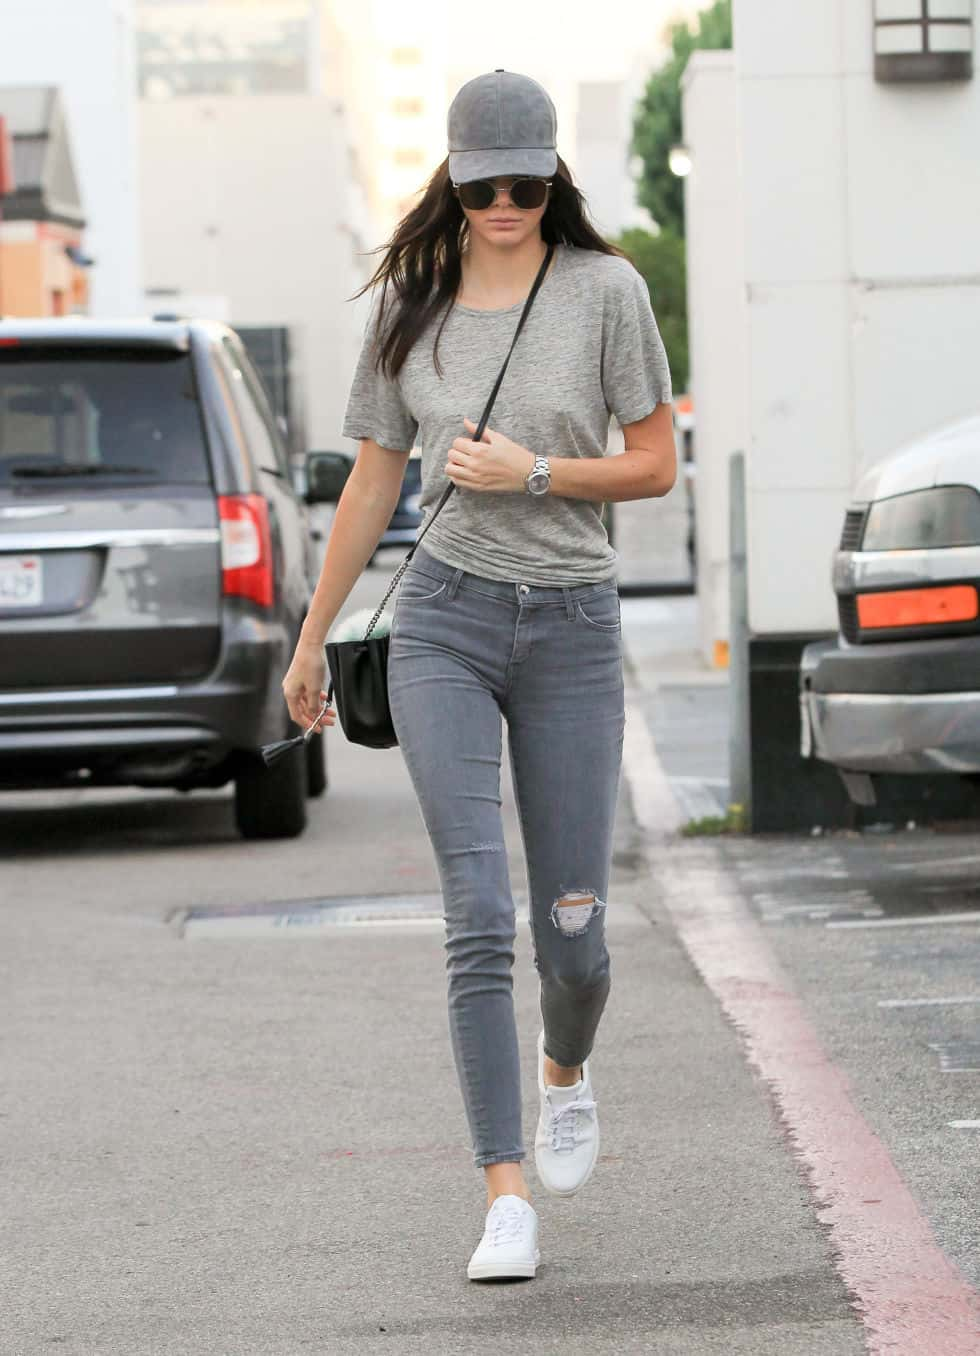 kendall-jenner-street-style-10